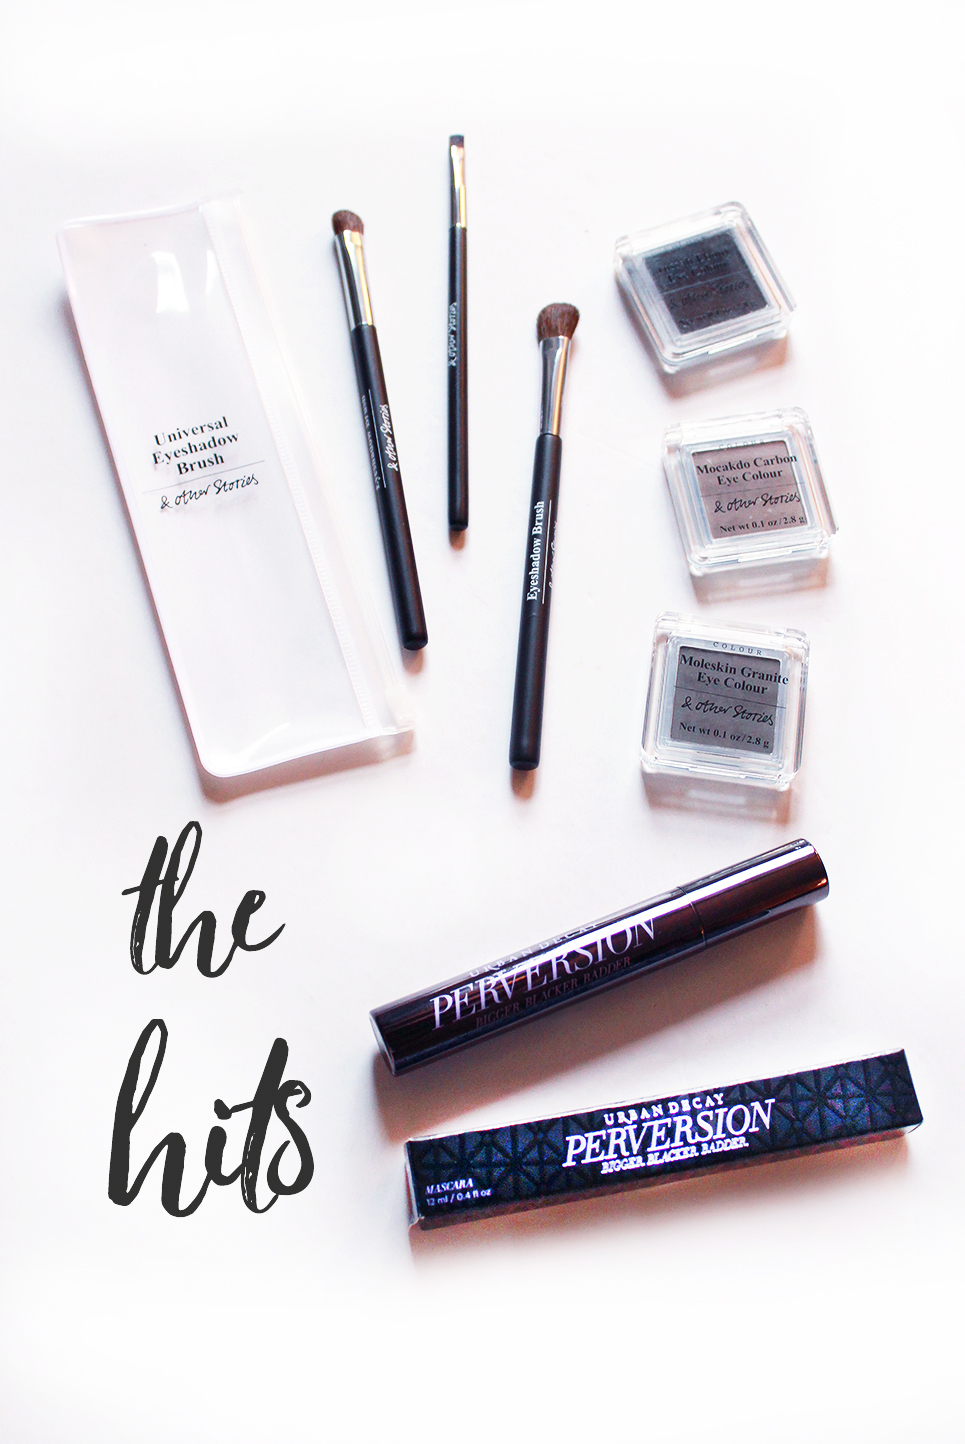 Expensive makeup does not always mean better performance. Although, I often find drugstore makeup does not measure up to my expectations either.